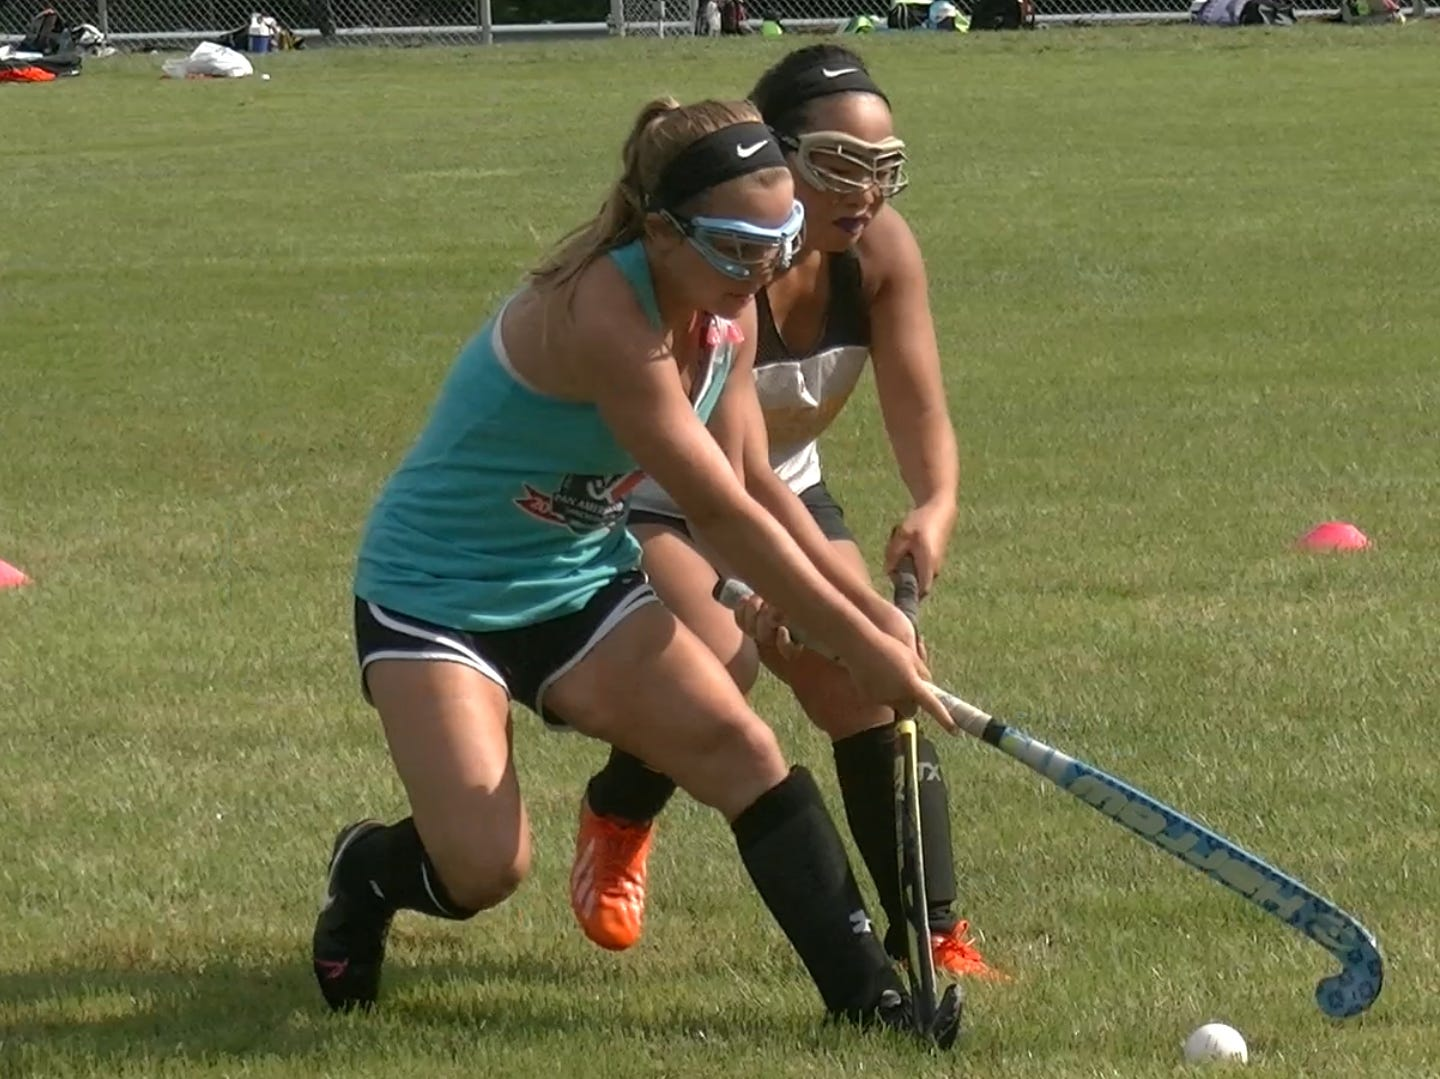 Members of Red Lion's field hockey team conduct drills Monday, Aug. 13, 2018.